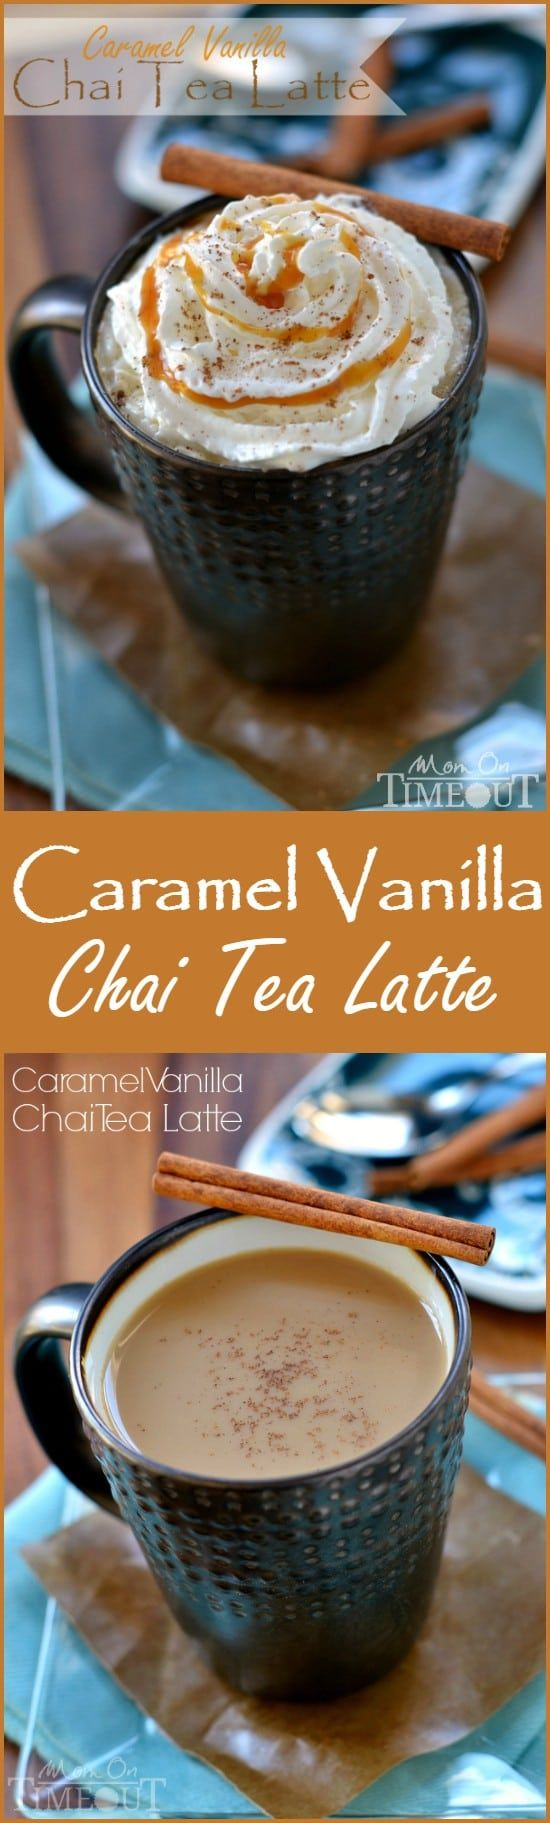 This Caramel Vanilla Chai Tea Latte is one of my favorite morning treats - perfect for those days when I have a few extra minutes!   MomOnTimeout.com   #beverage #drink #caramel #tea #chai #ad #lunchingawesome